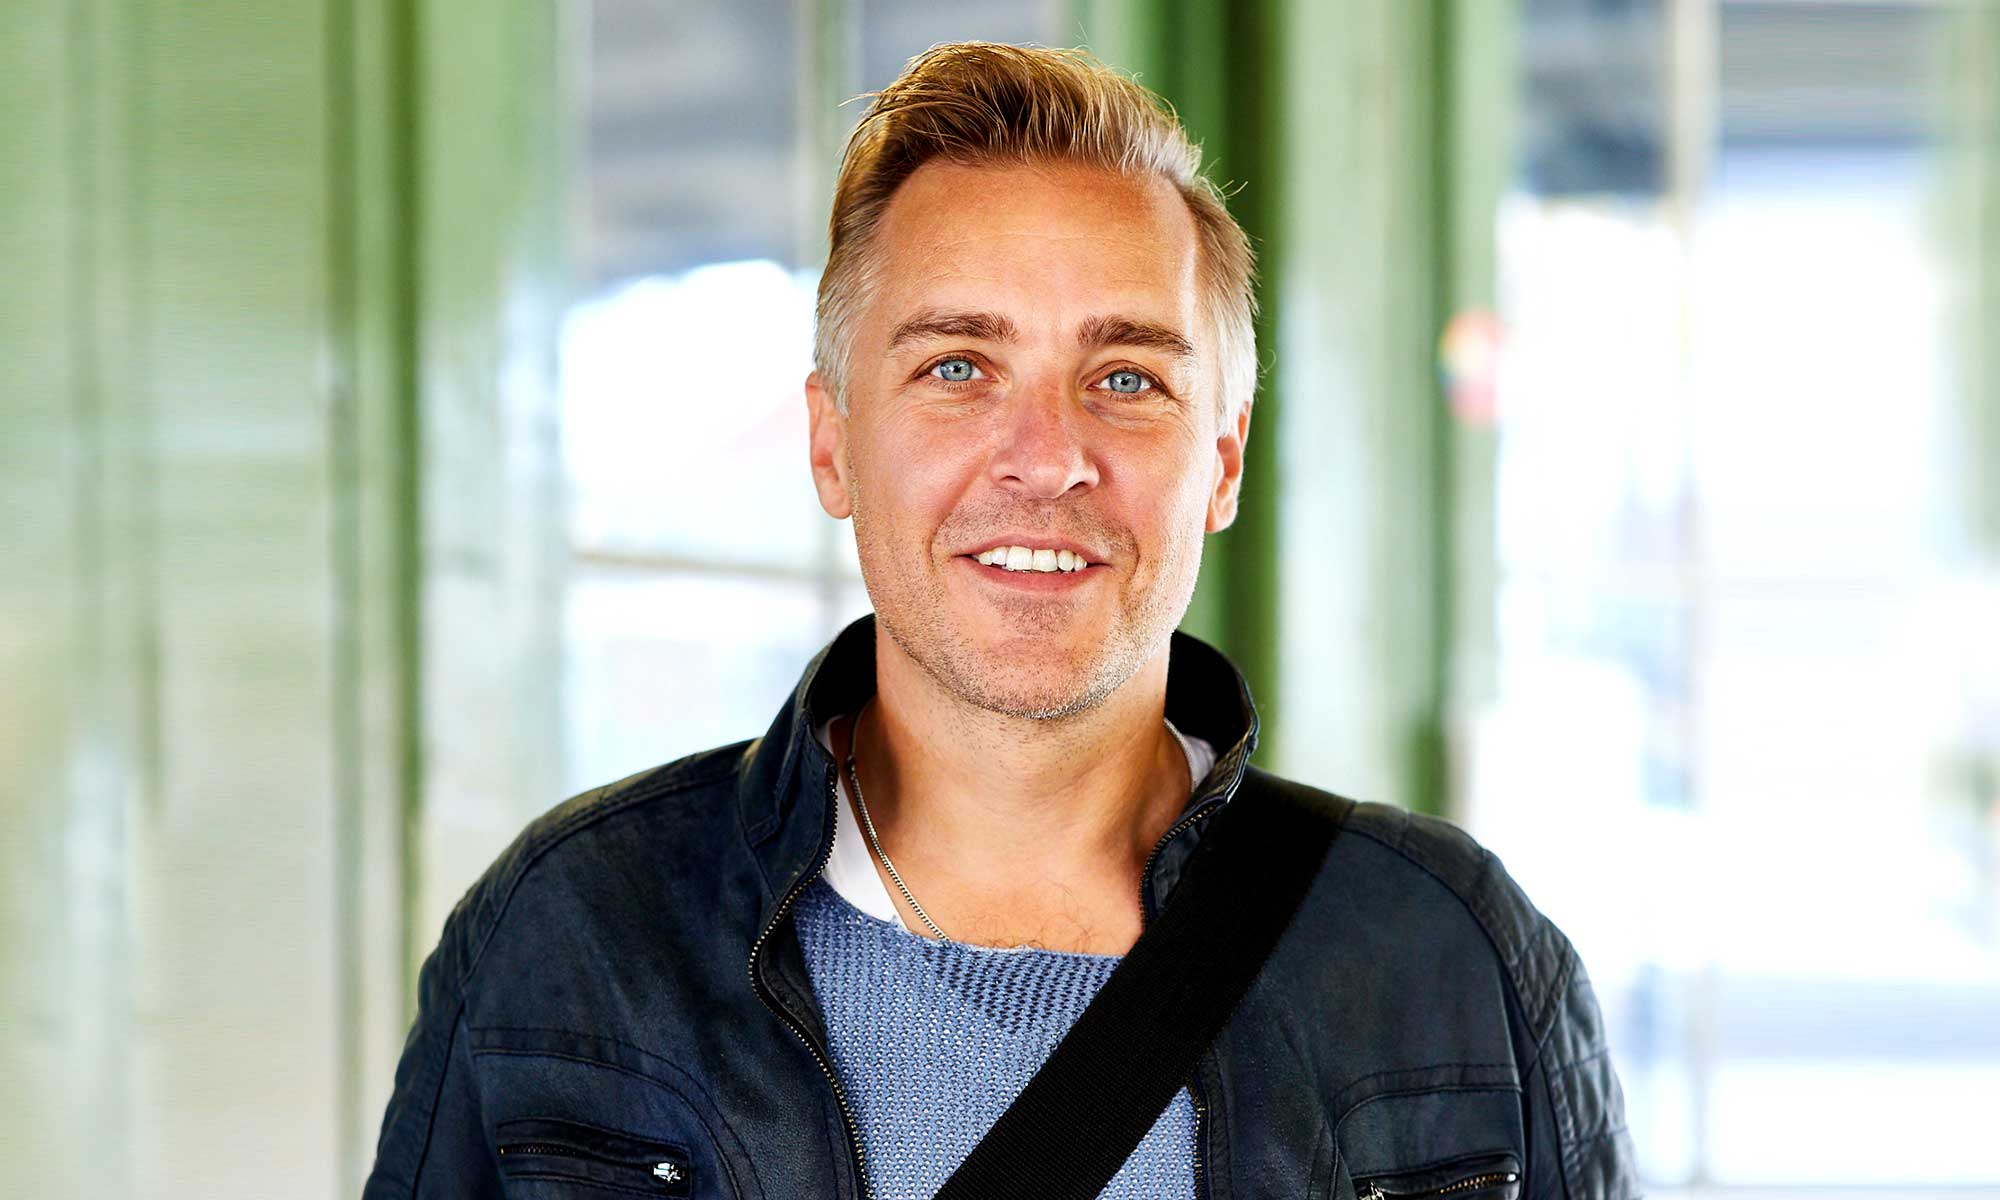 Tobias Röckl, Tour Guide Munich